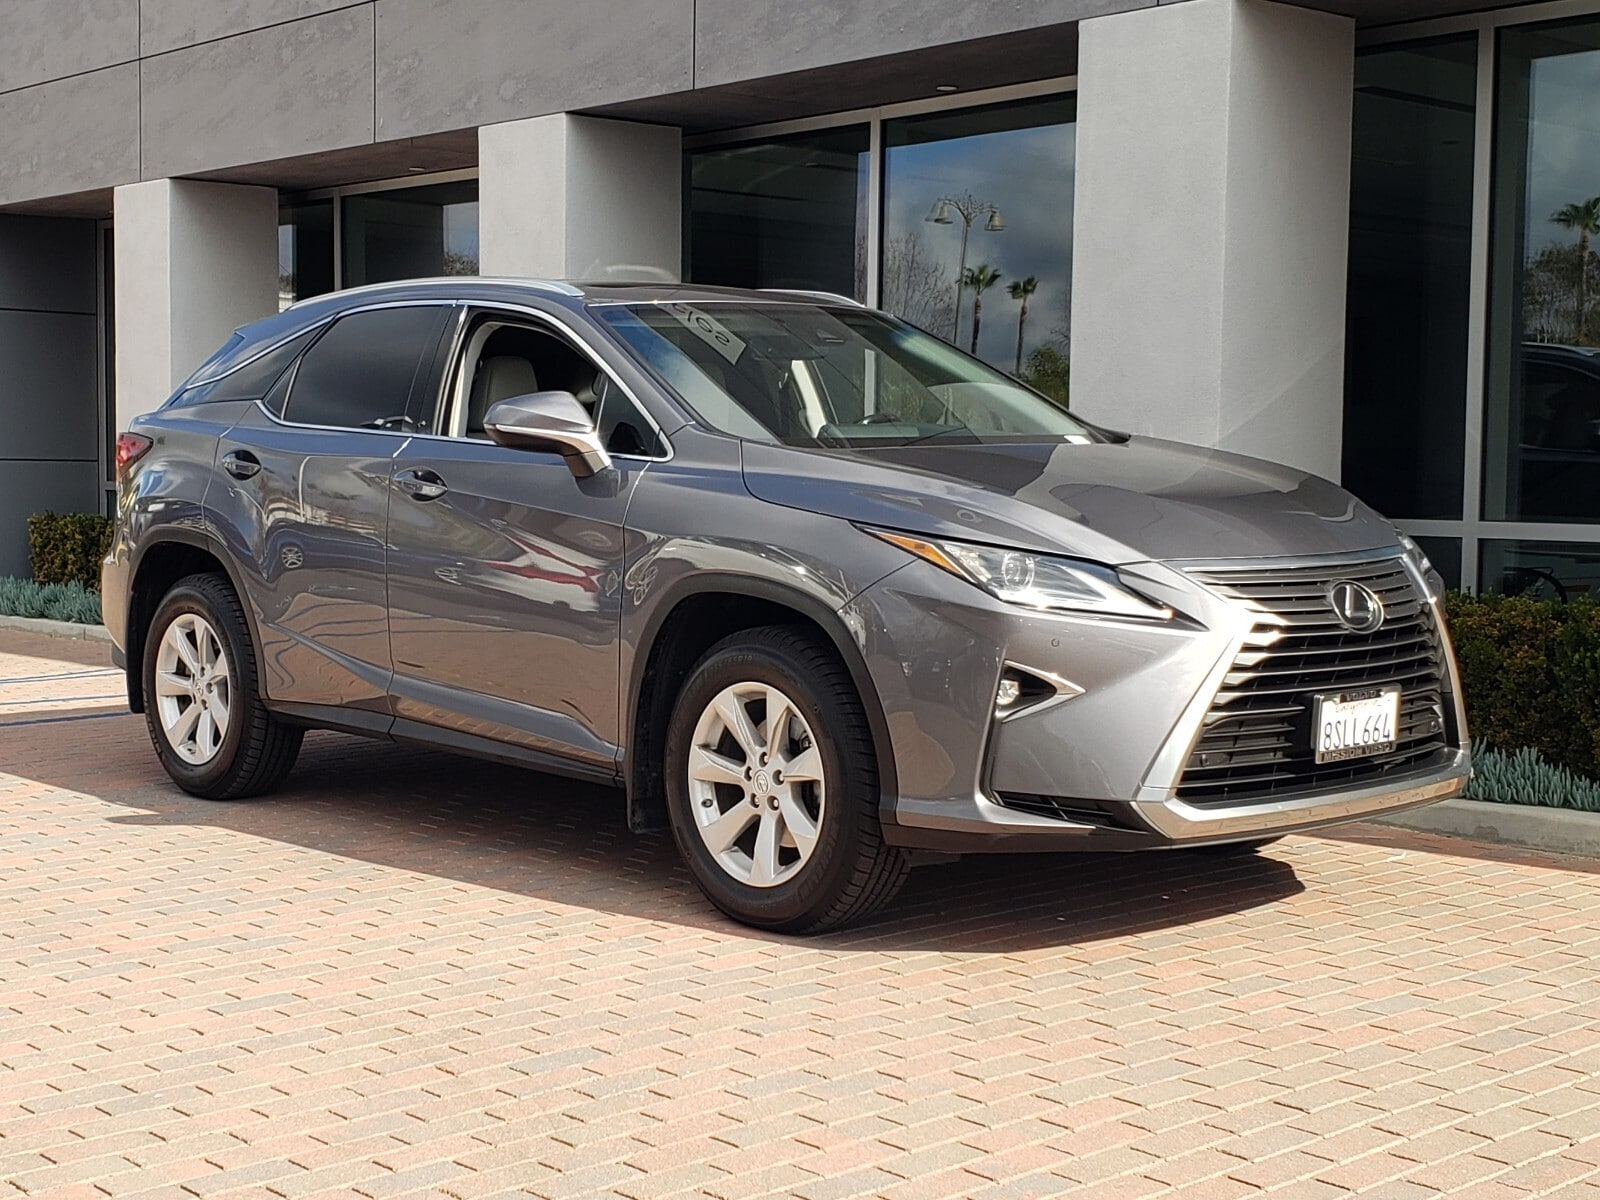 Used Lexus Rx Mission Viejo Ca